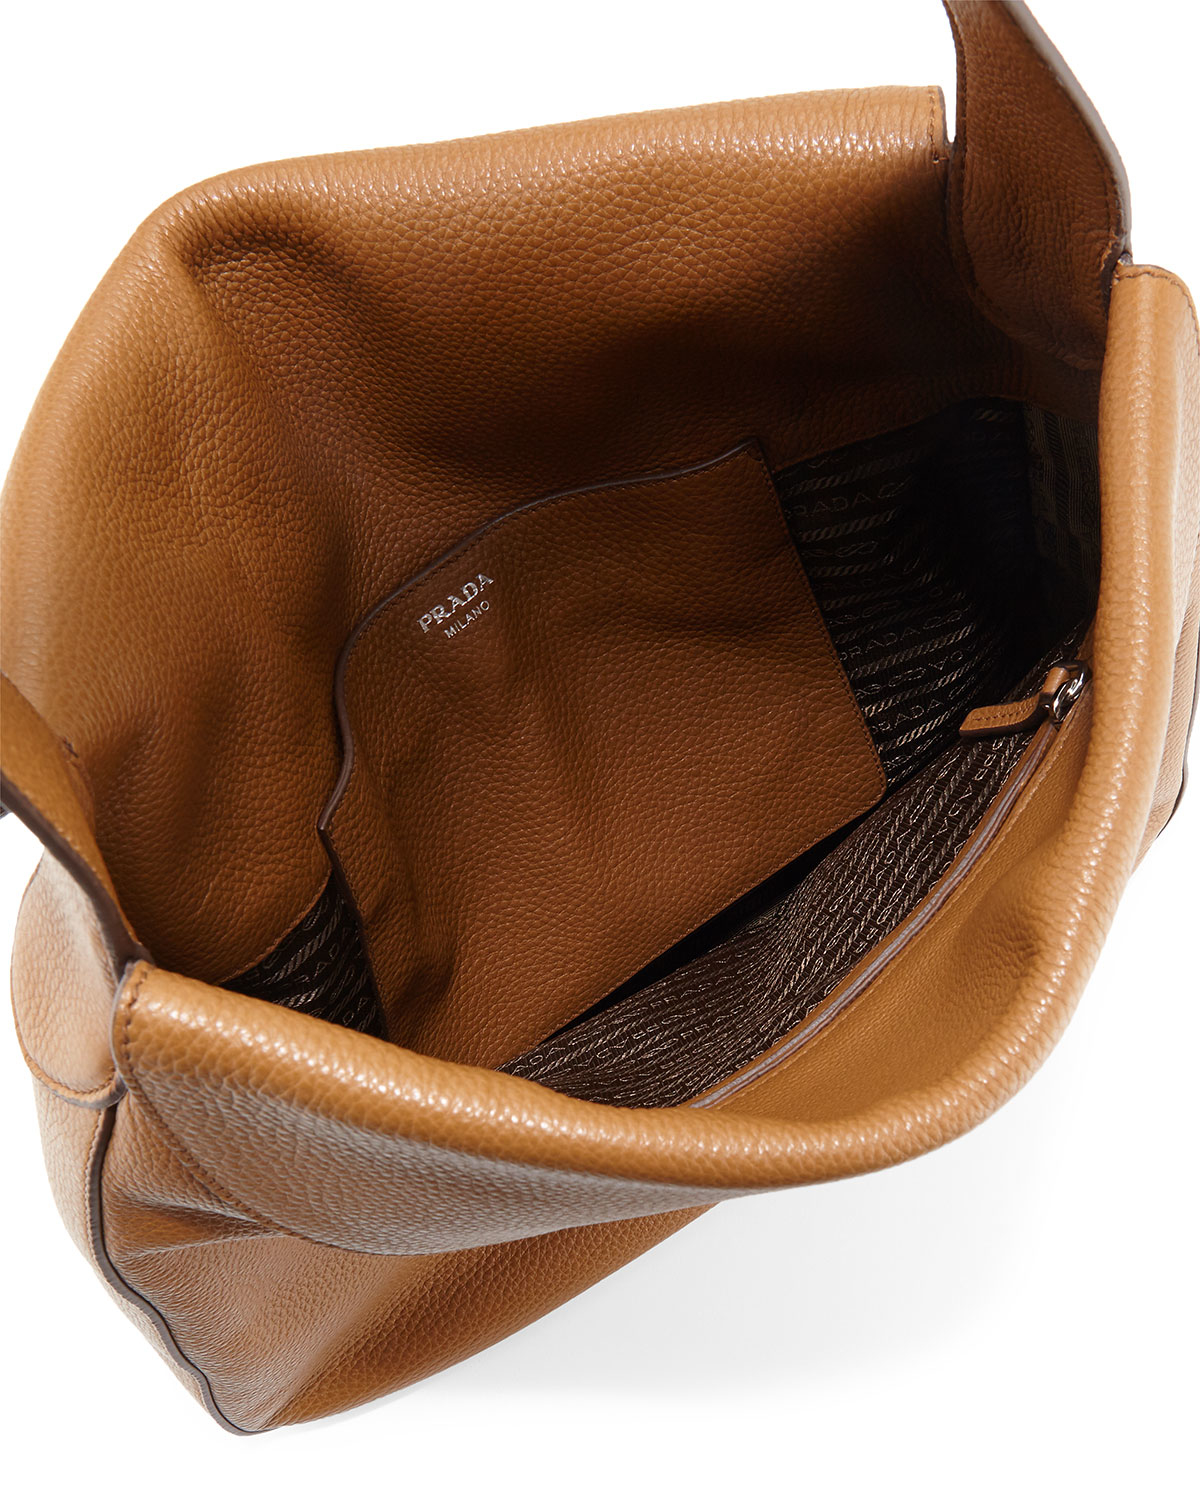 ... Lyst - Prada Cervo Doubled Flap-Top Leather Hobo Bag in Blac low priced  2b849 . ... e9235ac986